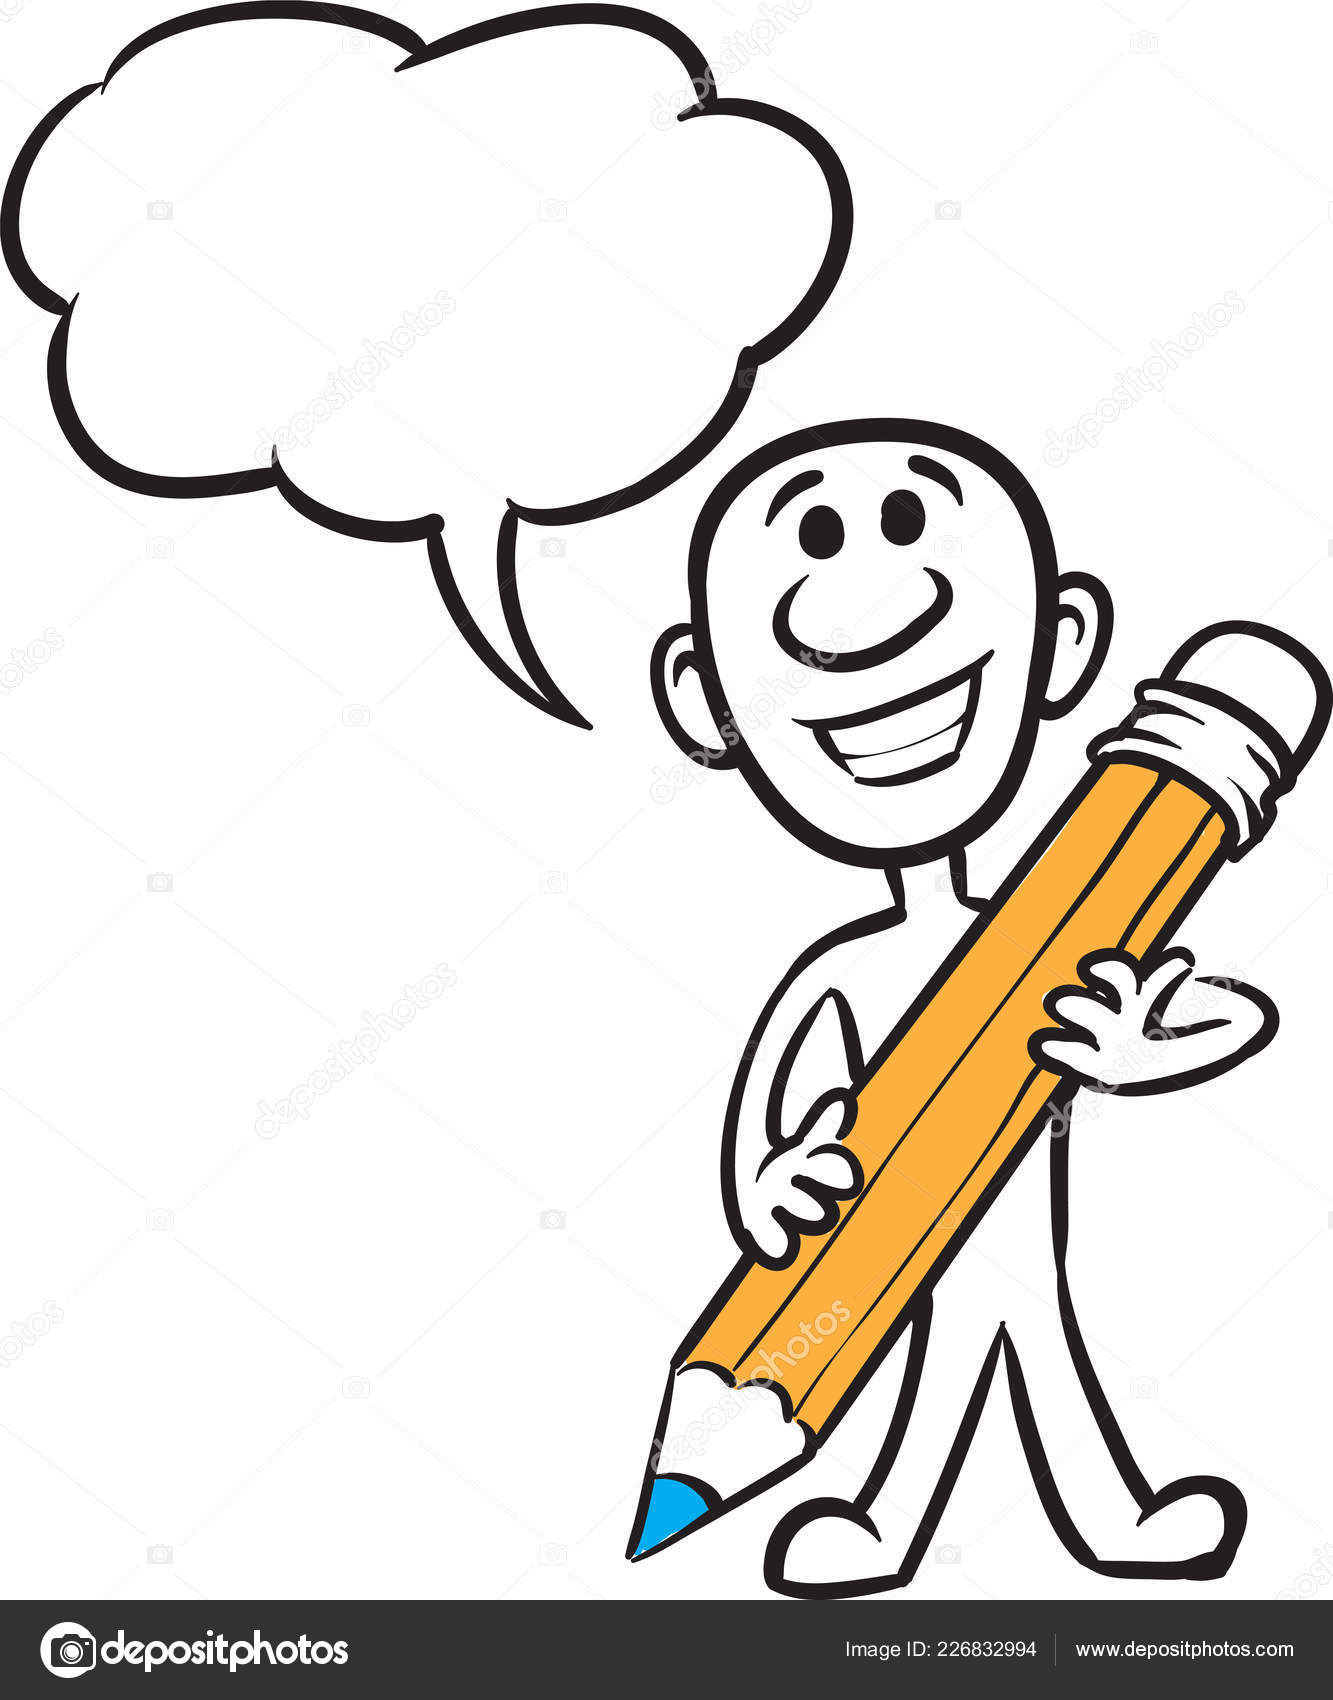 Drawings Easy Pencil Of Cartoons Vector Illustration Cartoon